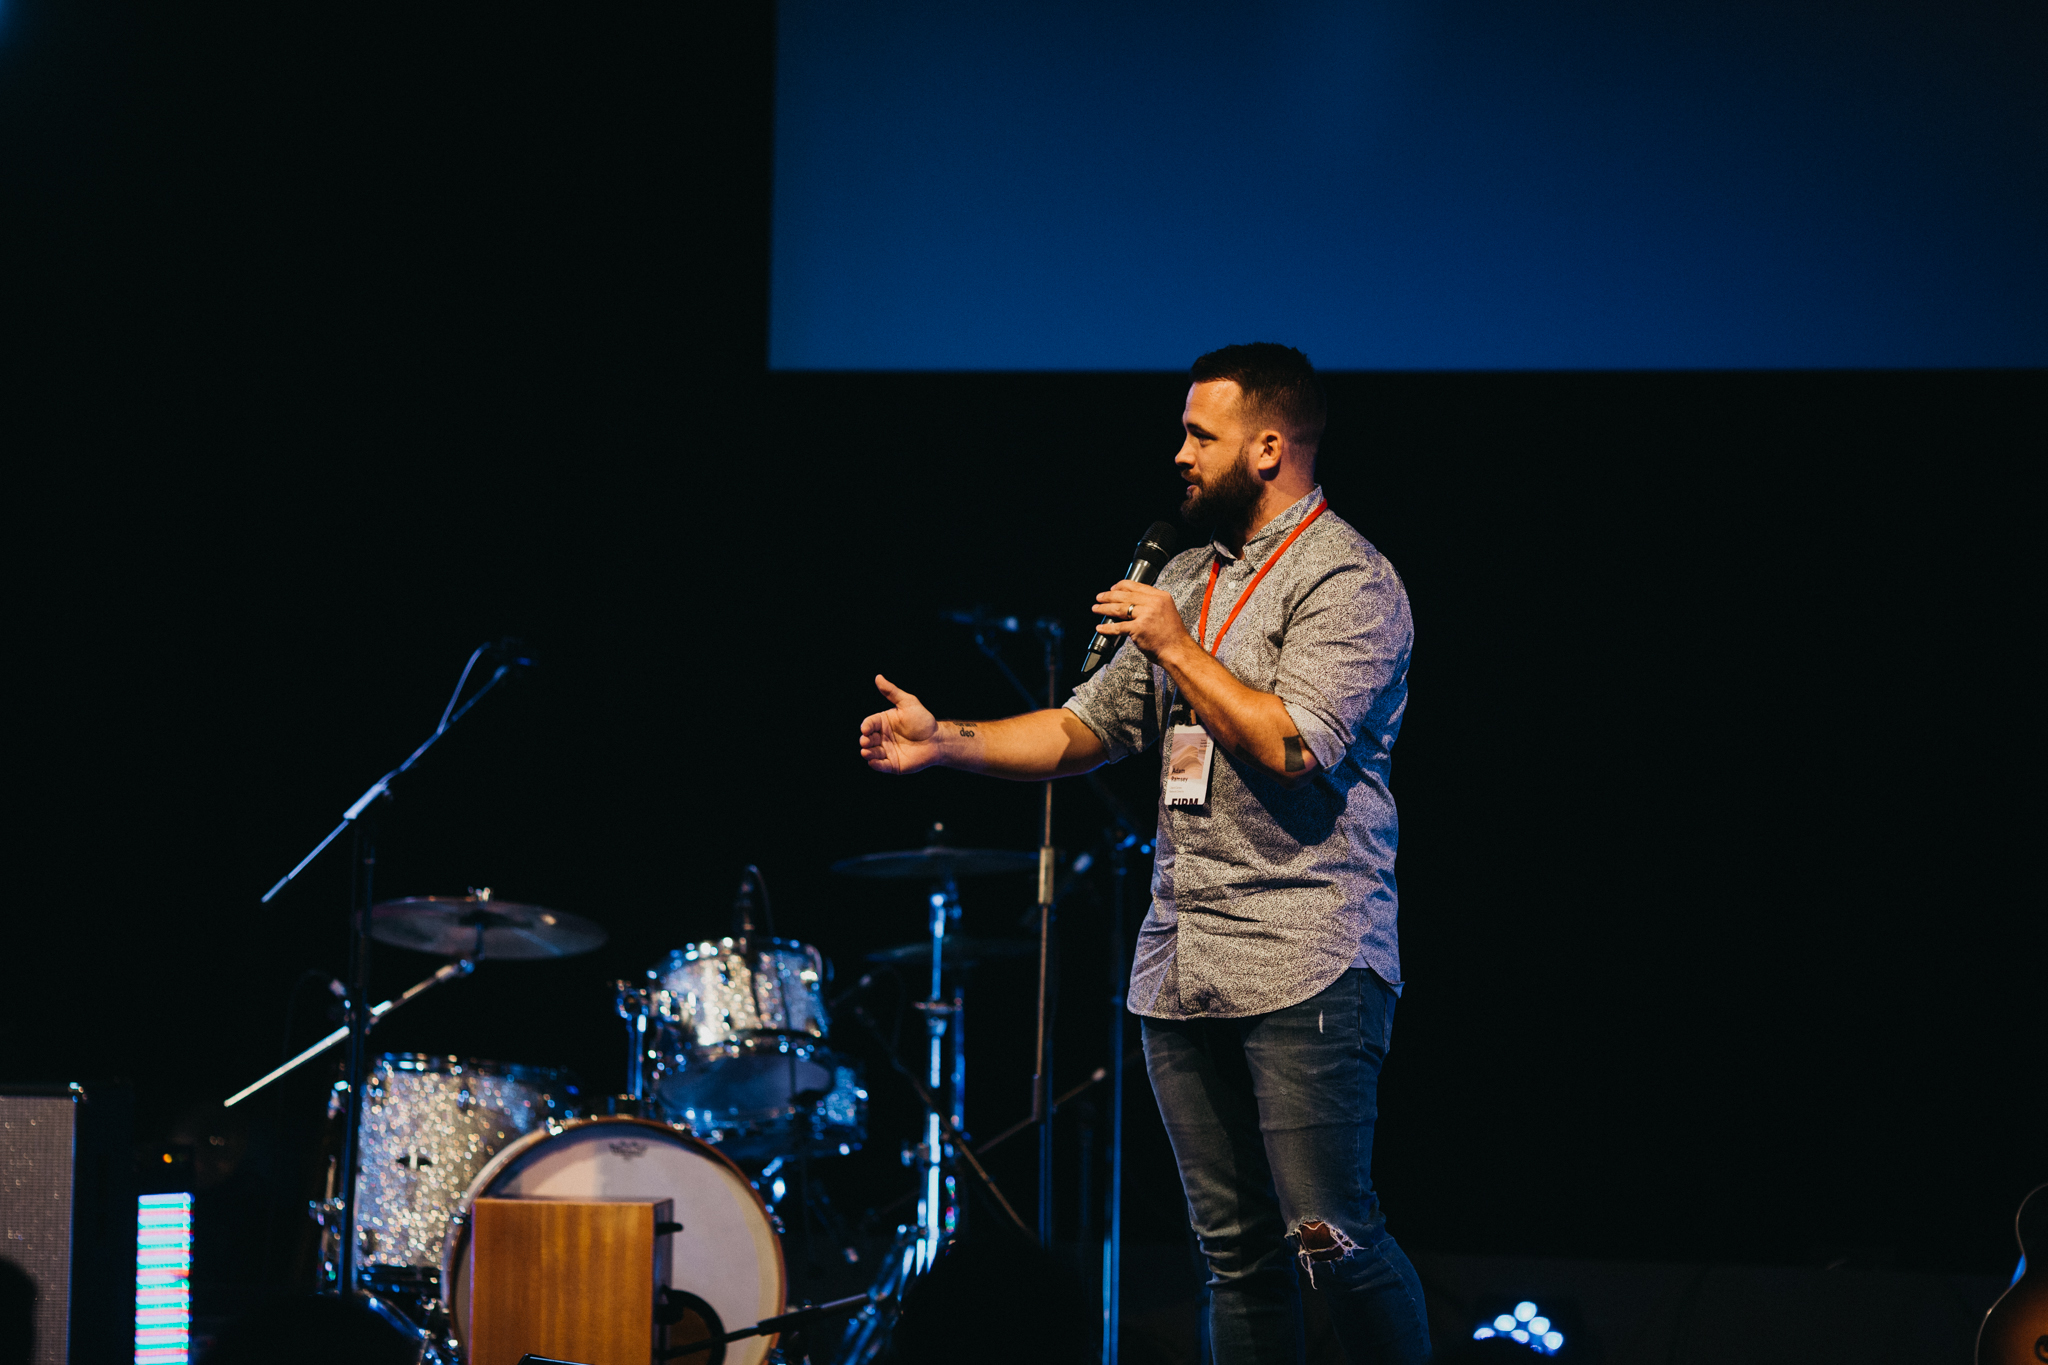 Session 6. Adam Ramsey – Stand Firm | We know how the story ends